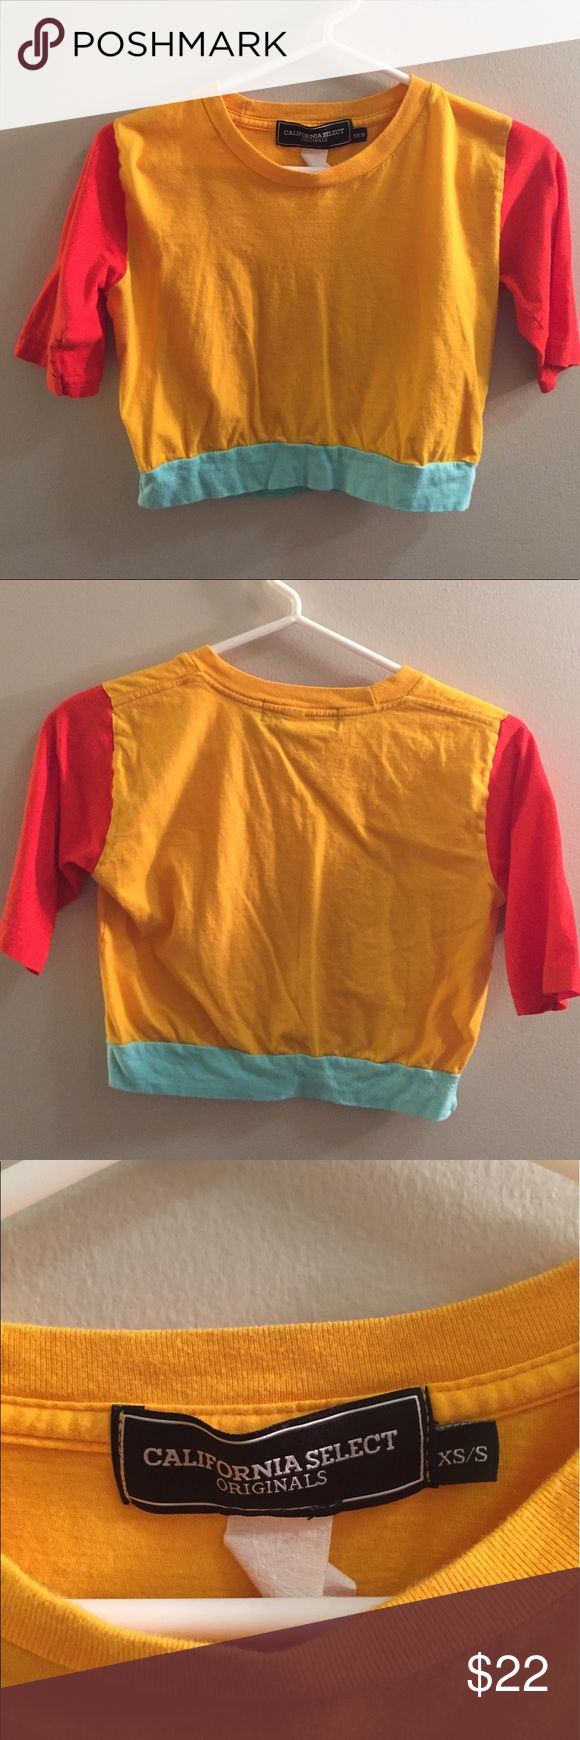 RARE American Apparel tricolored tshirt This is a ONE OF A KIND tshirt! Made from recycled fabric, only one of its kind 🍑 perfect condition and totally a statement piece American Apparel Tops